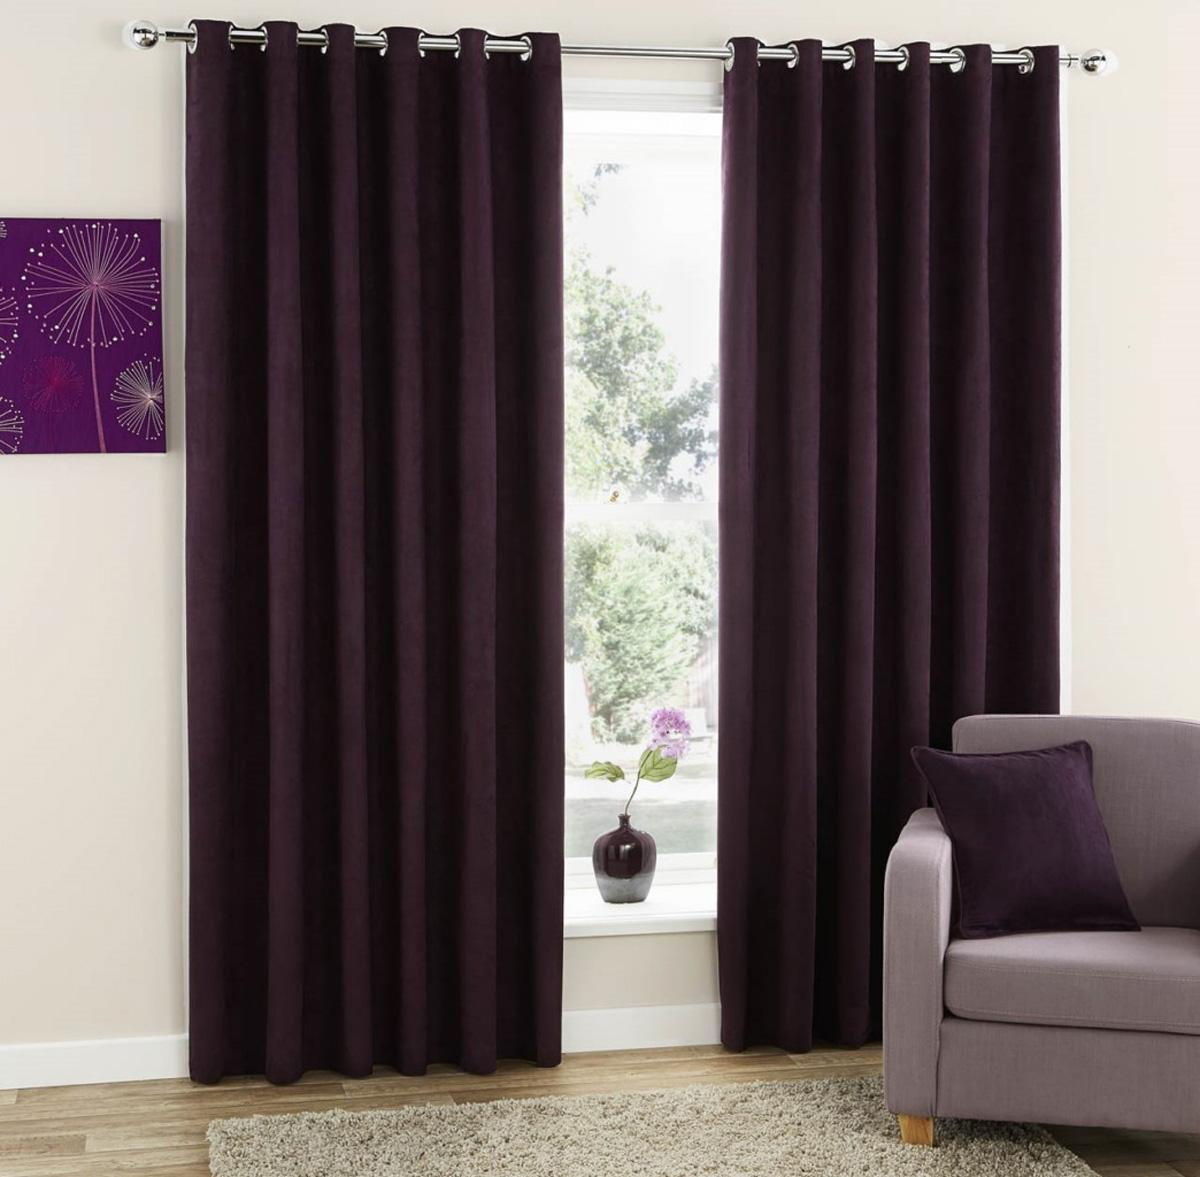 Dark purple patterned curtains - Faux Suede Ready Made Eyelet Curtains